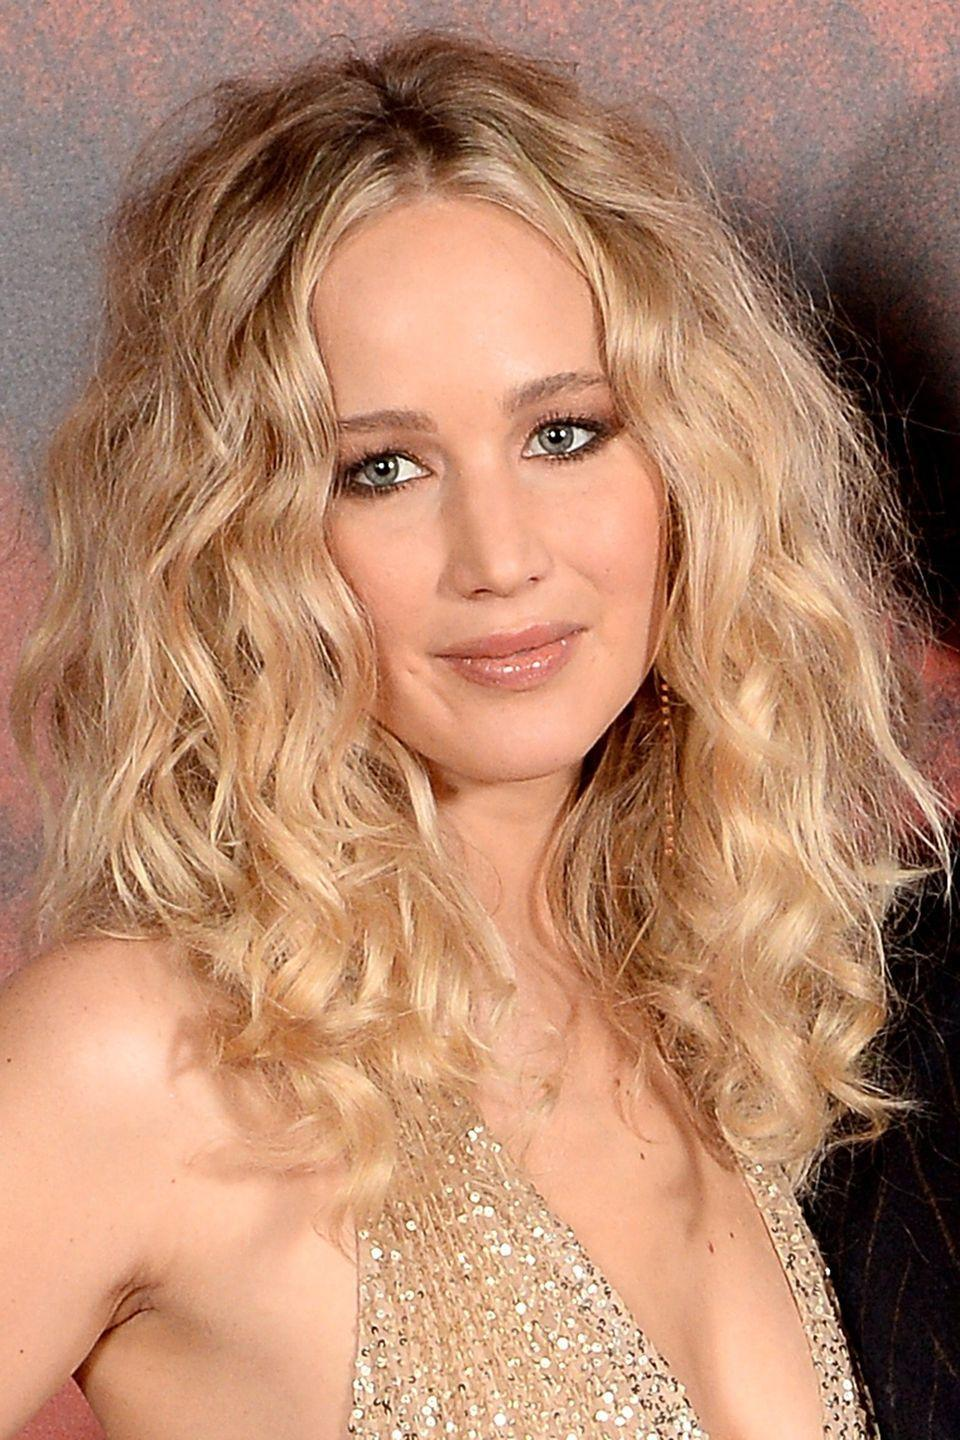 """<p>Jennifer Lawrence proves that you don't need naturally curly hair to achieve big waves. The trick is to use a thin-barrelled curling wand, like Ghd's <a href=""""https://www.amazon.co.uk/ghd-C1-SOFTTONGUK-soft-curl-tong/dp/B01L8OCV94/ref=sr_1_1_a_it?ie=UTF8&qid=1519122015&sr=8-1&keywords=ghd+CURVE%C2%AE+SOFT+CURL+TONG&tag=harpersbazaar.co.uk-21&ascsubtag=harpersbazaaruk.gallery.14536332"""" rel=""""nofollow noopener"""" target=""""_blank"""" data-ylk=""""slk:Soft Curl Tong"""" class=""""link rapid-noclick-resp"""">Soft Curl Tong</a>, £99, before brushing out the curls and using lots of lots of texture spray.</p>"""